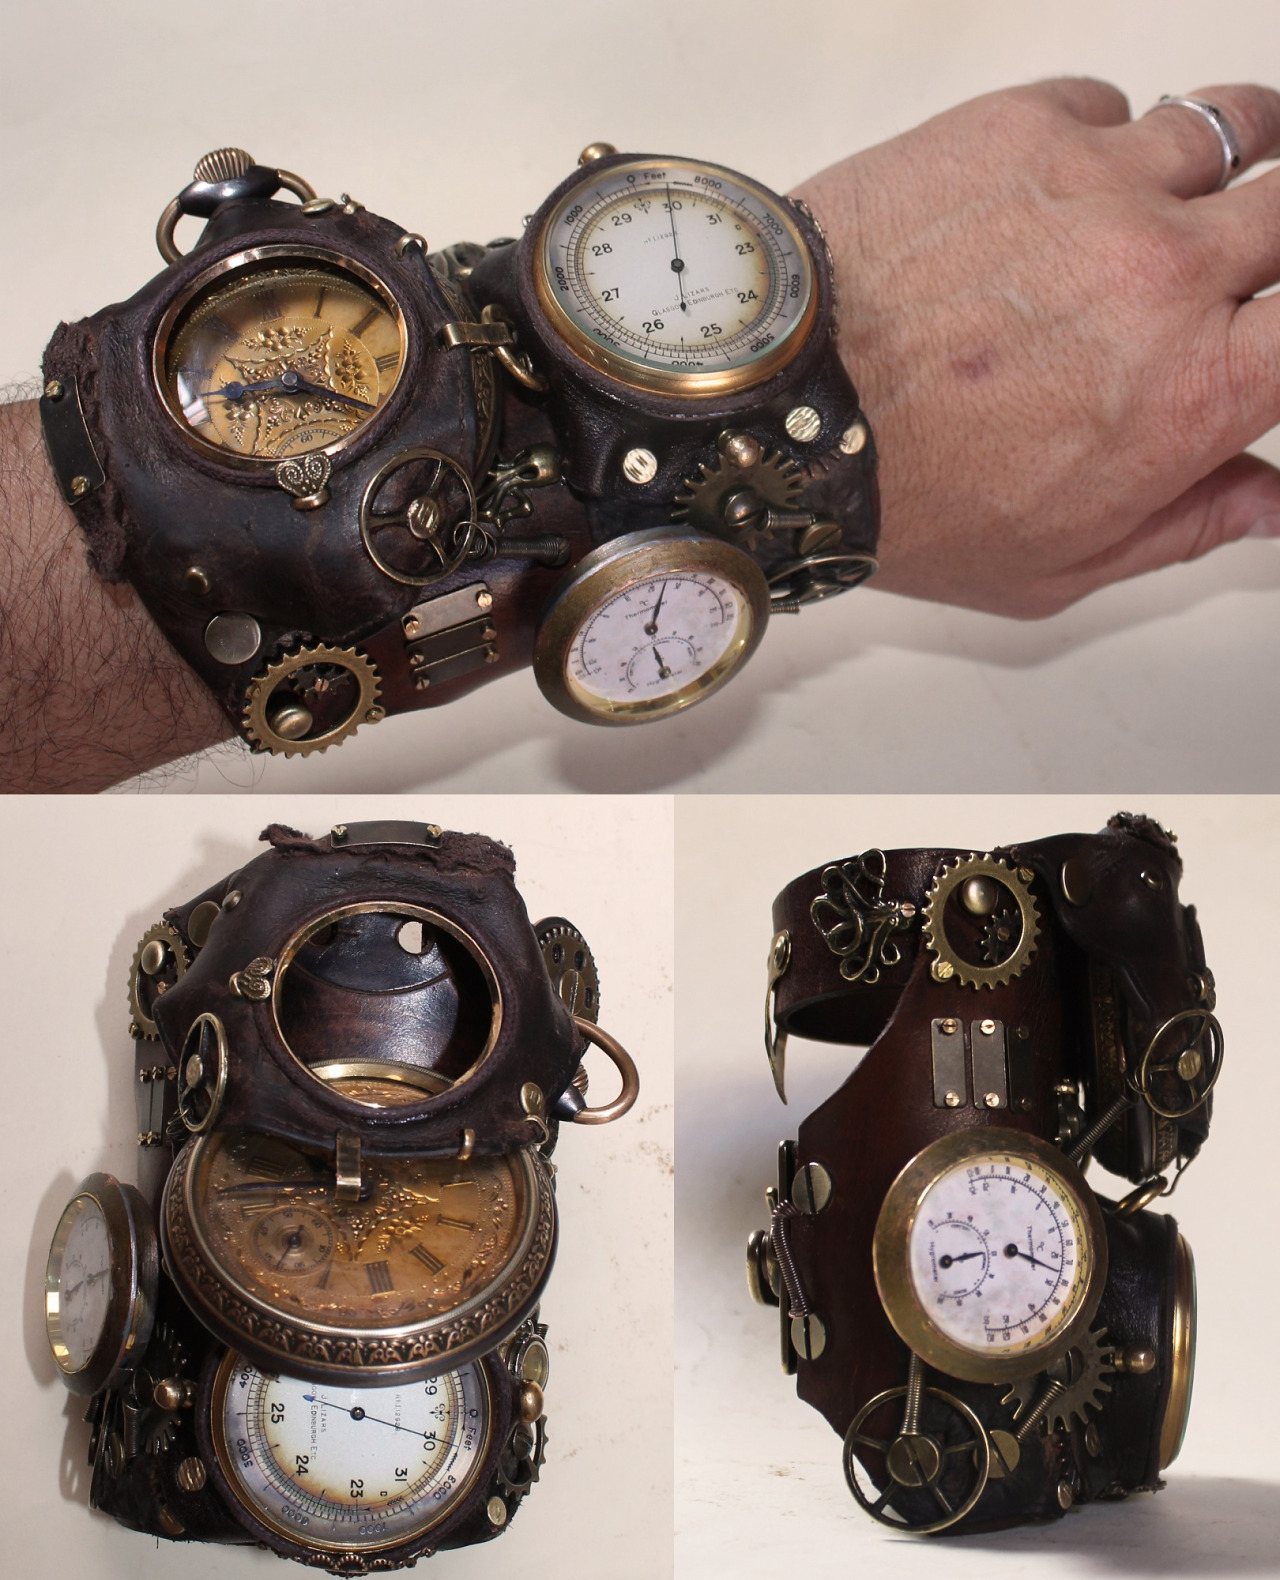 Steampunk dating site